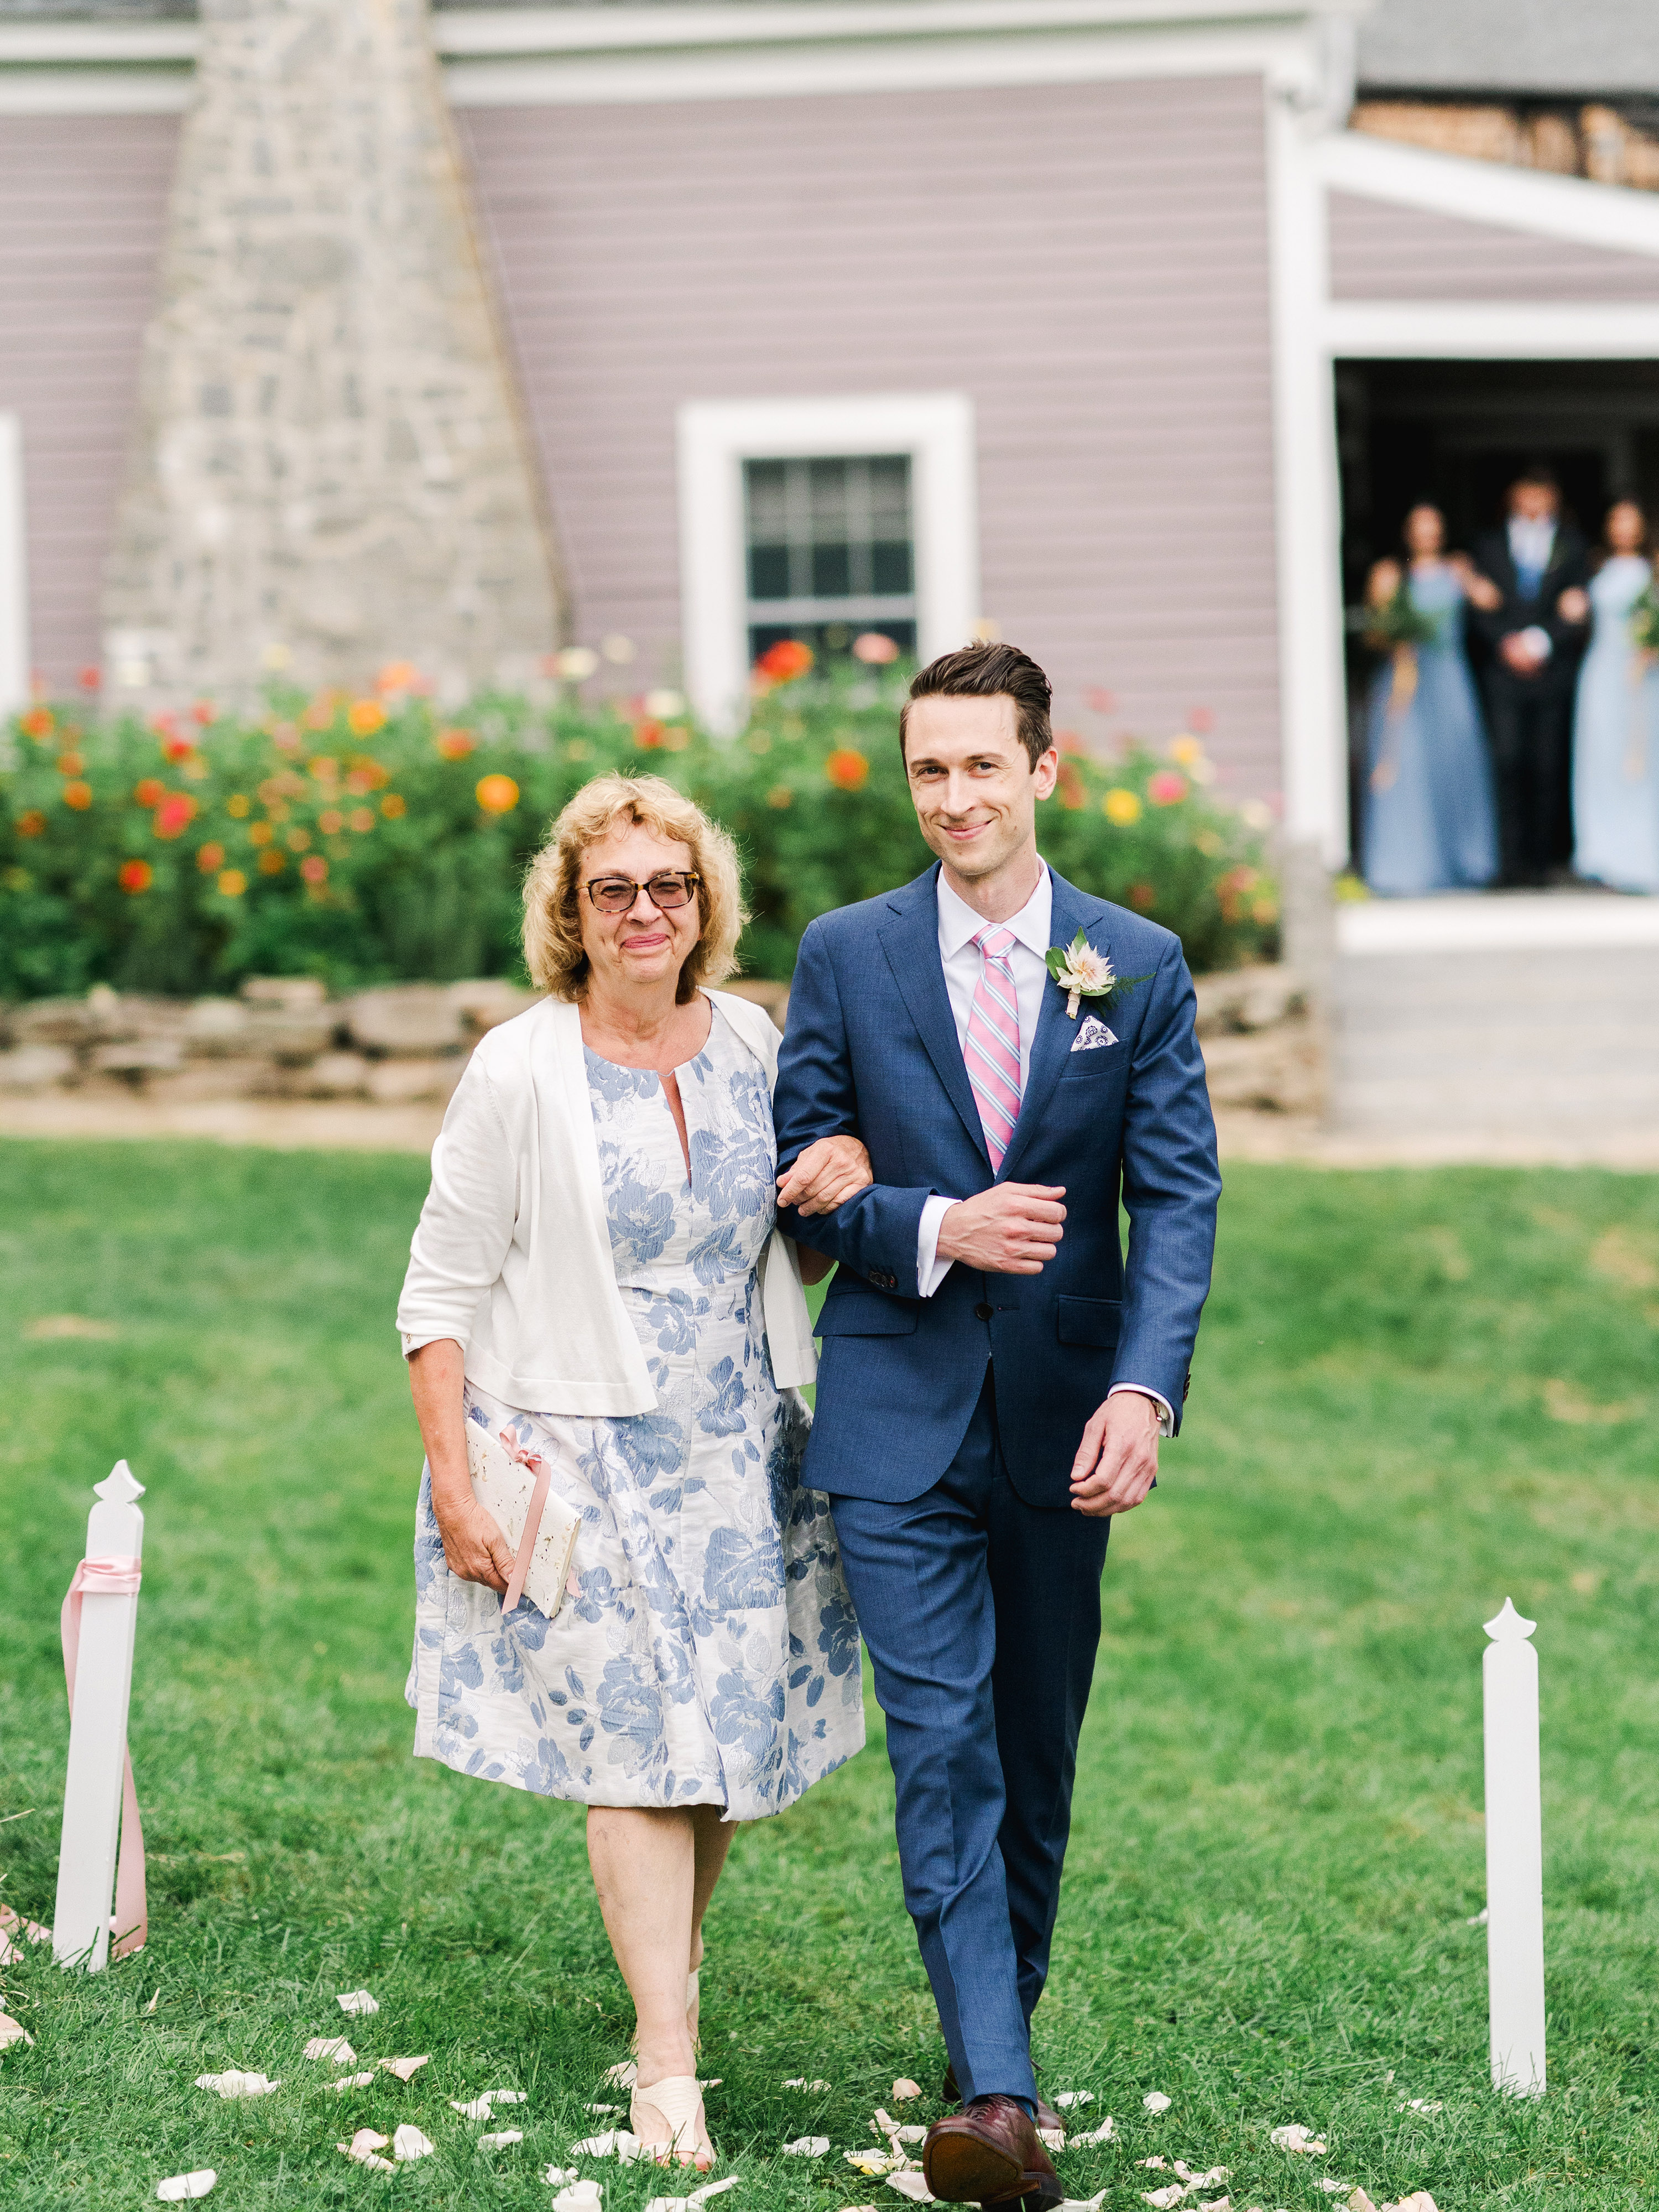 dayane collin wedding processional groom and mother